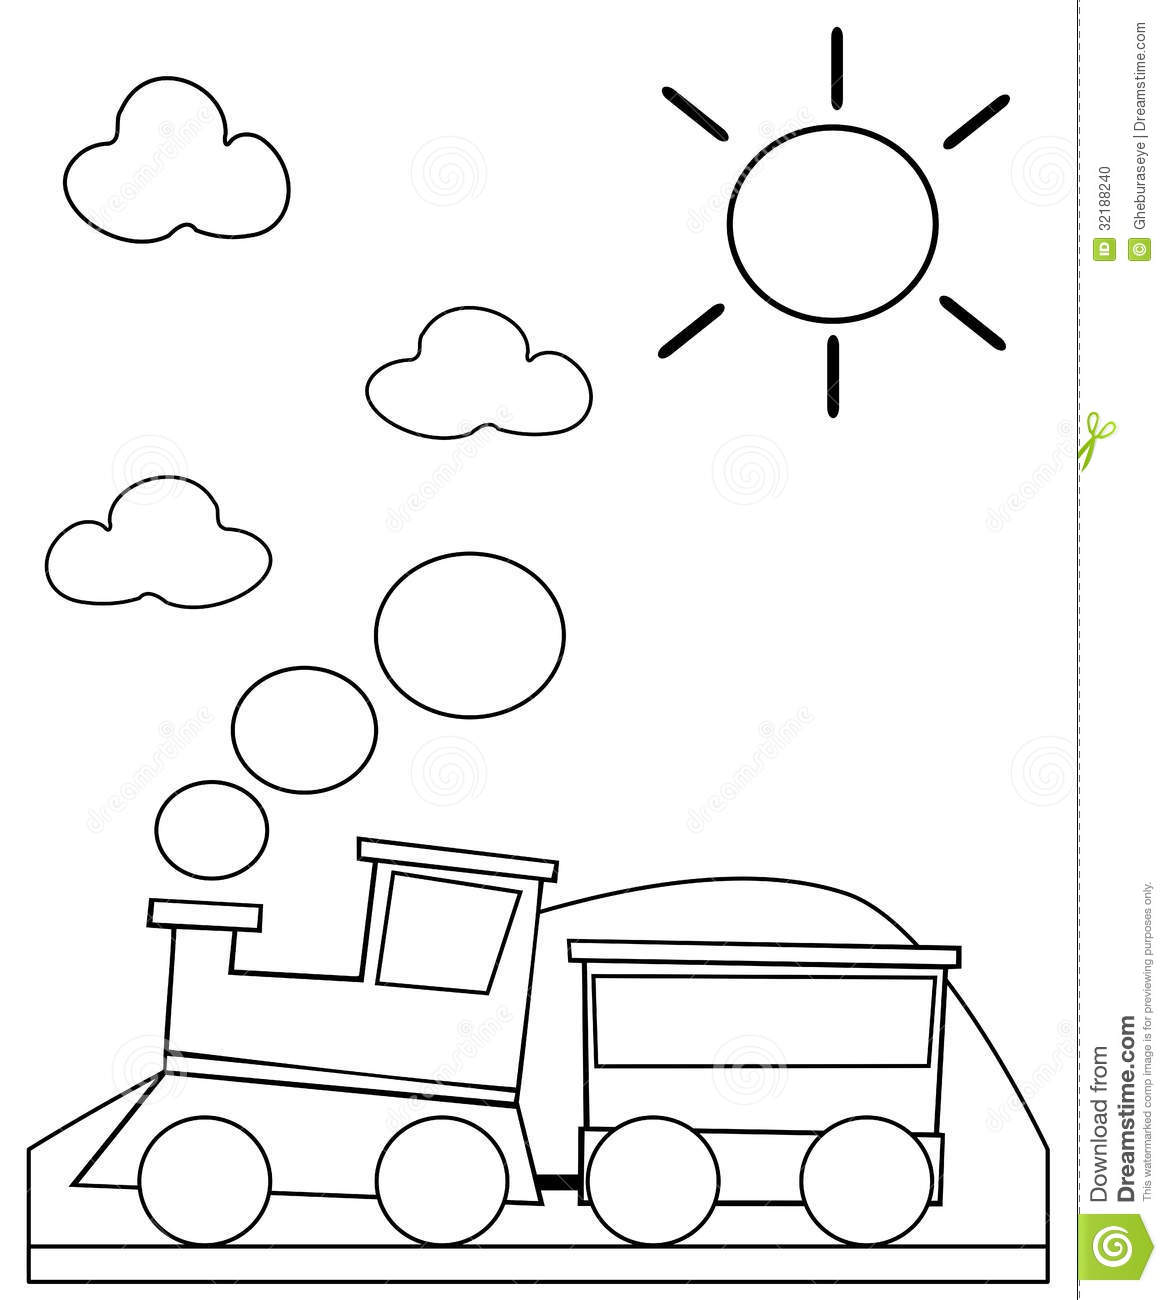 Coloring Train Stock Illustration Image Of Image Colorable